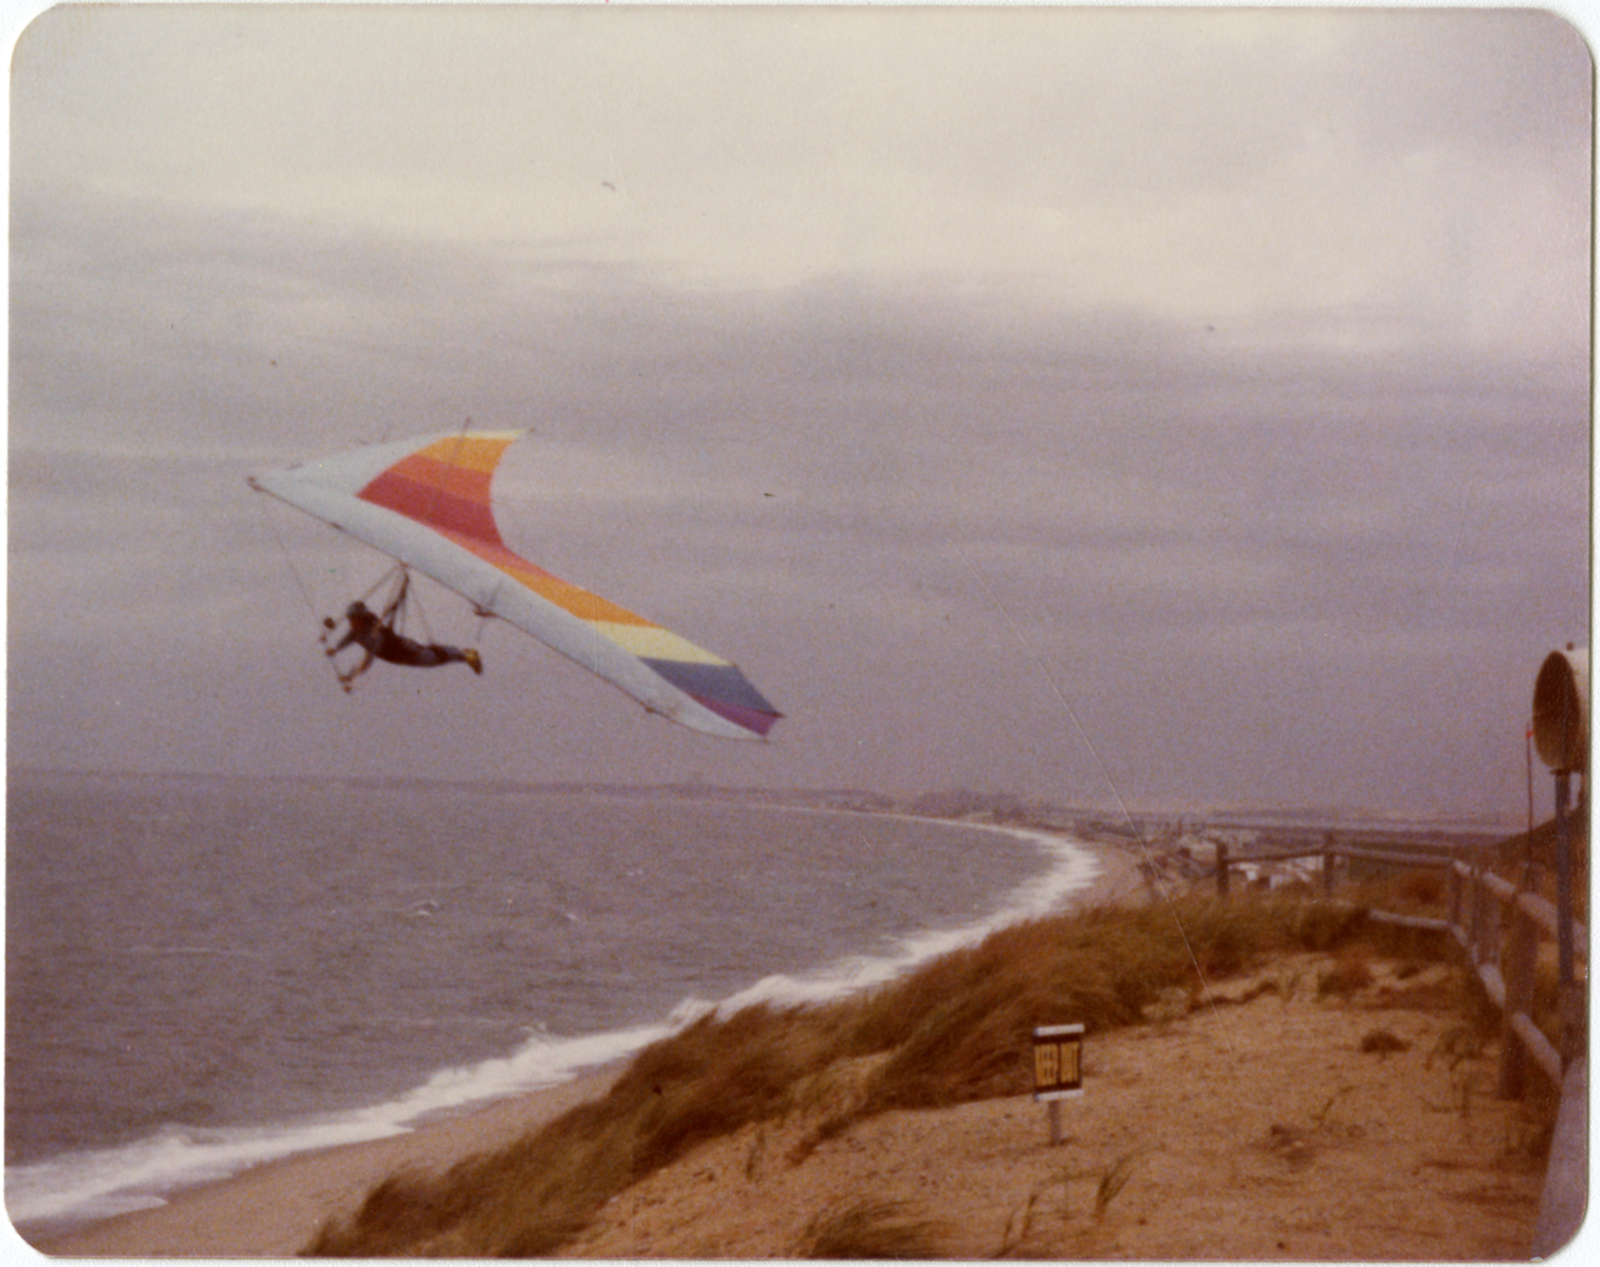 An old color photo of a hang glider soaring over a beach